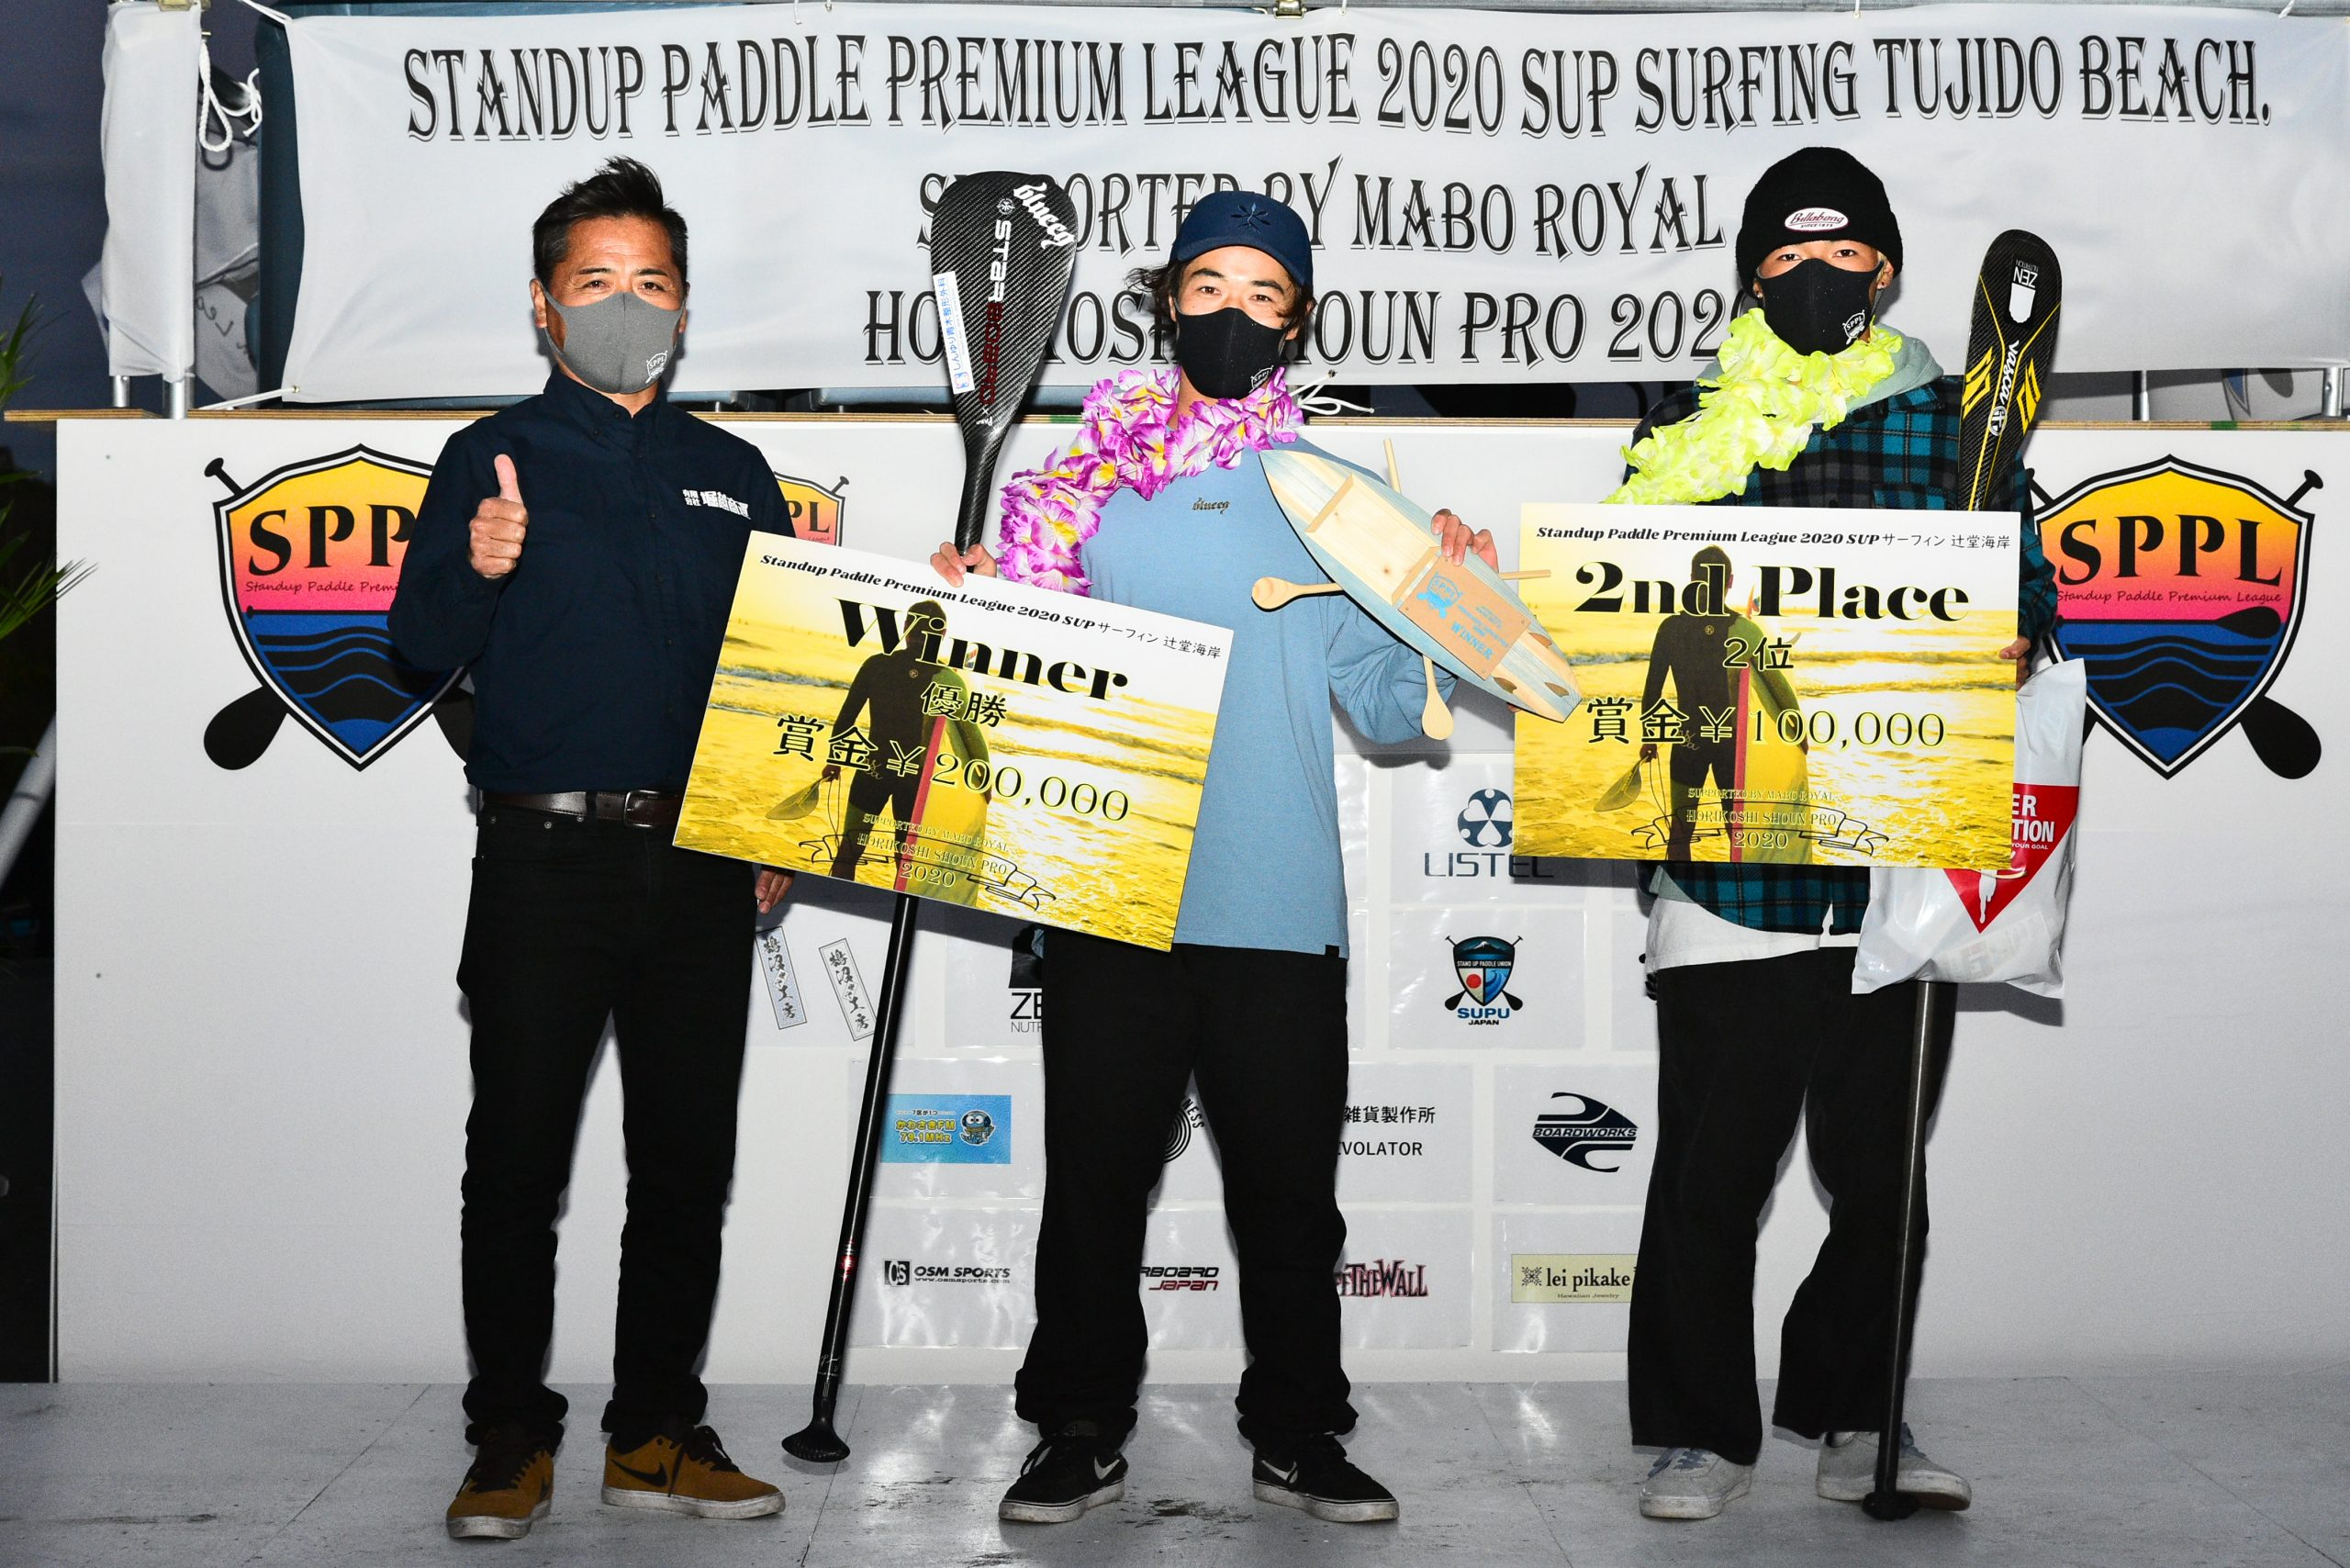 SUP サーフィン 辻堂海岸. Supported by Mabo Royal, HORIKOSHI SHOUN PRO.